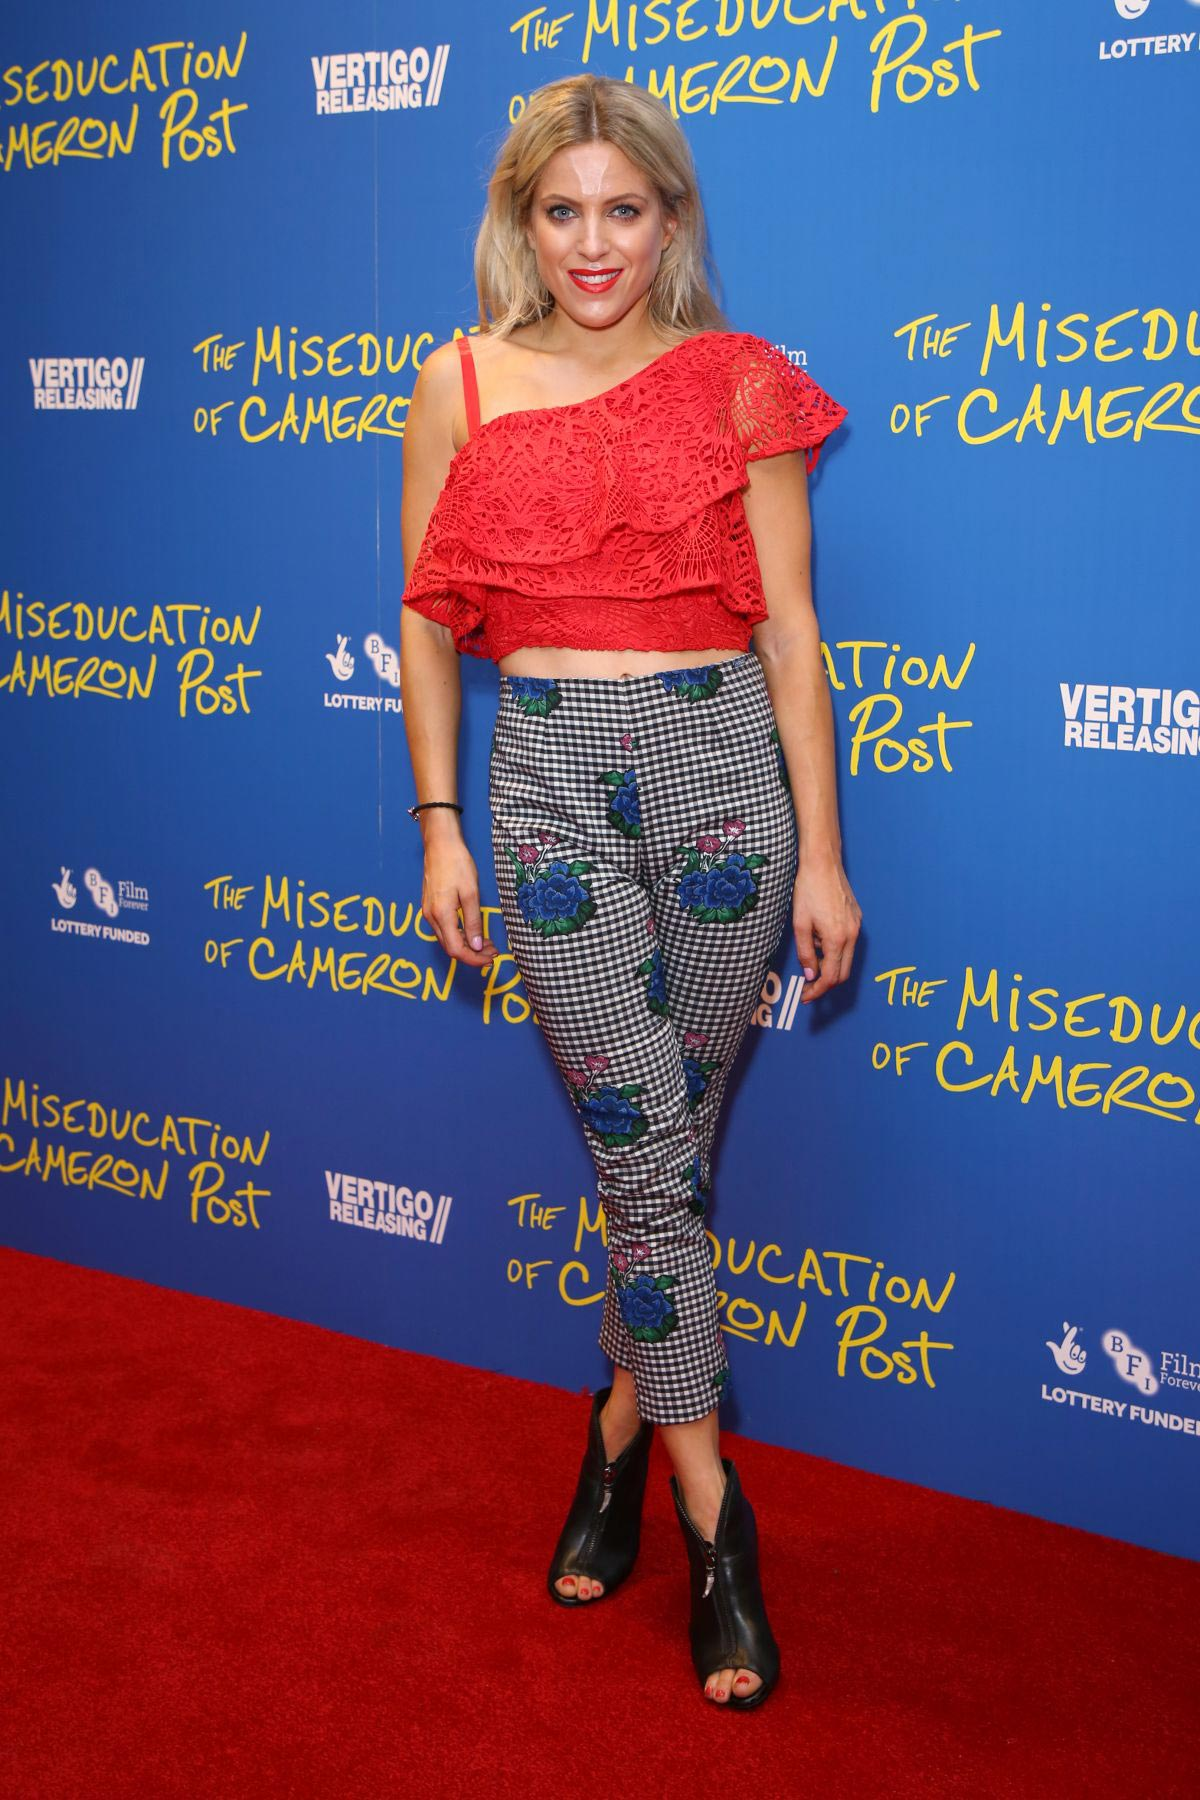 OLIVIA COX at The Miseducation of Cameron Post Screening in London 2018/08/22 1